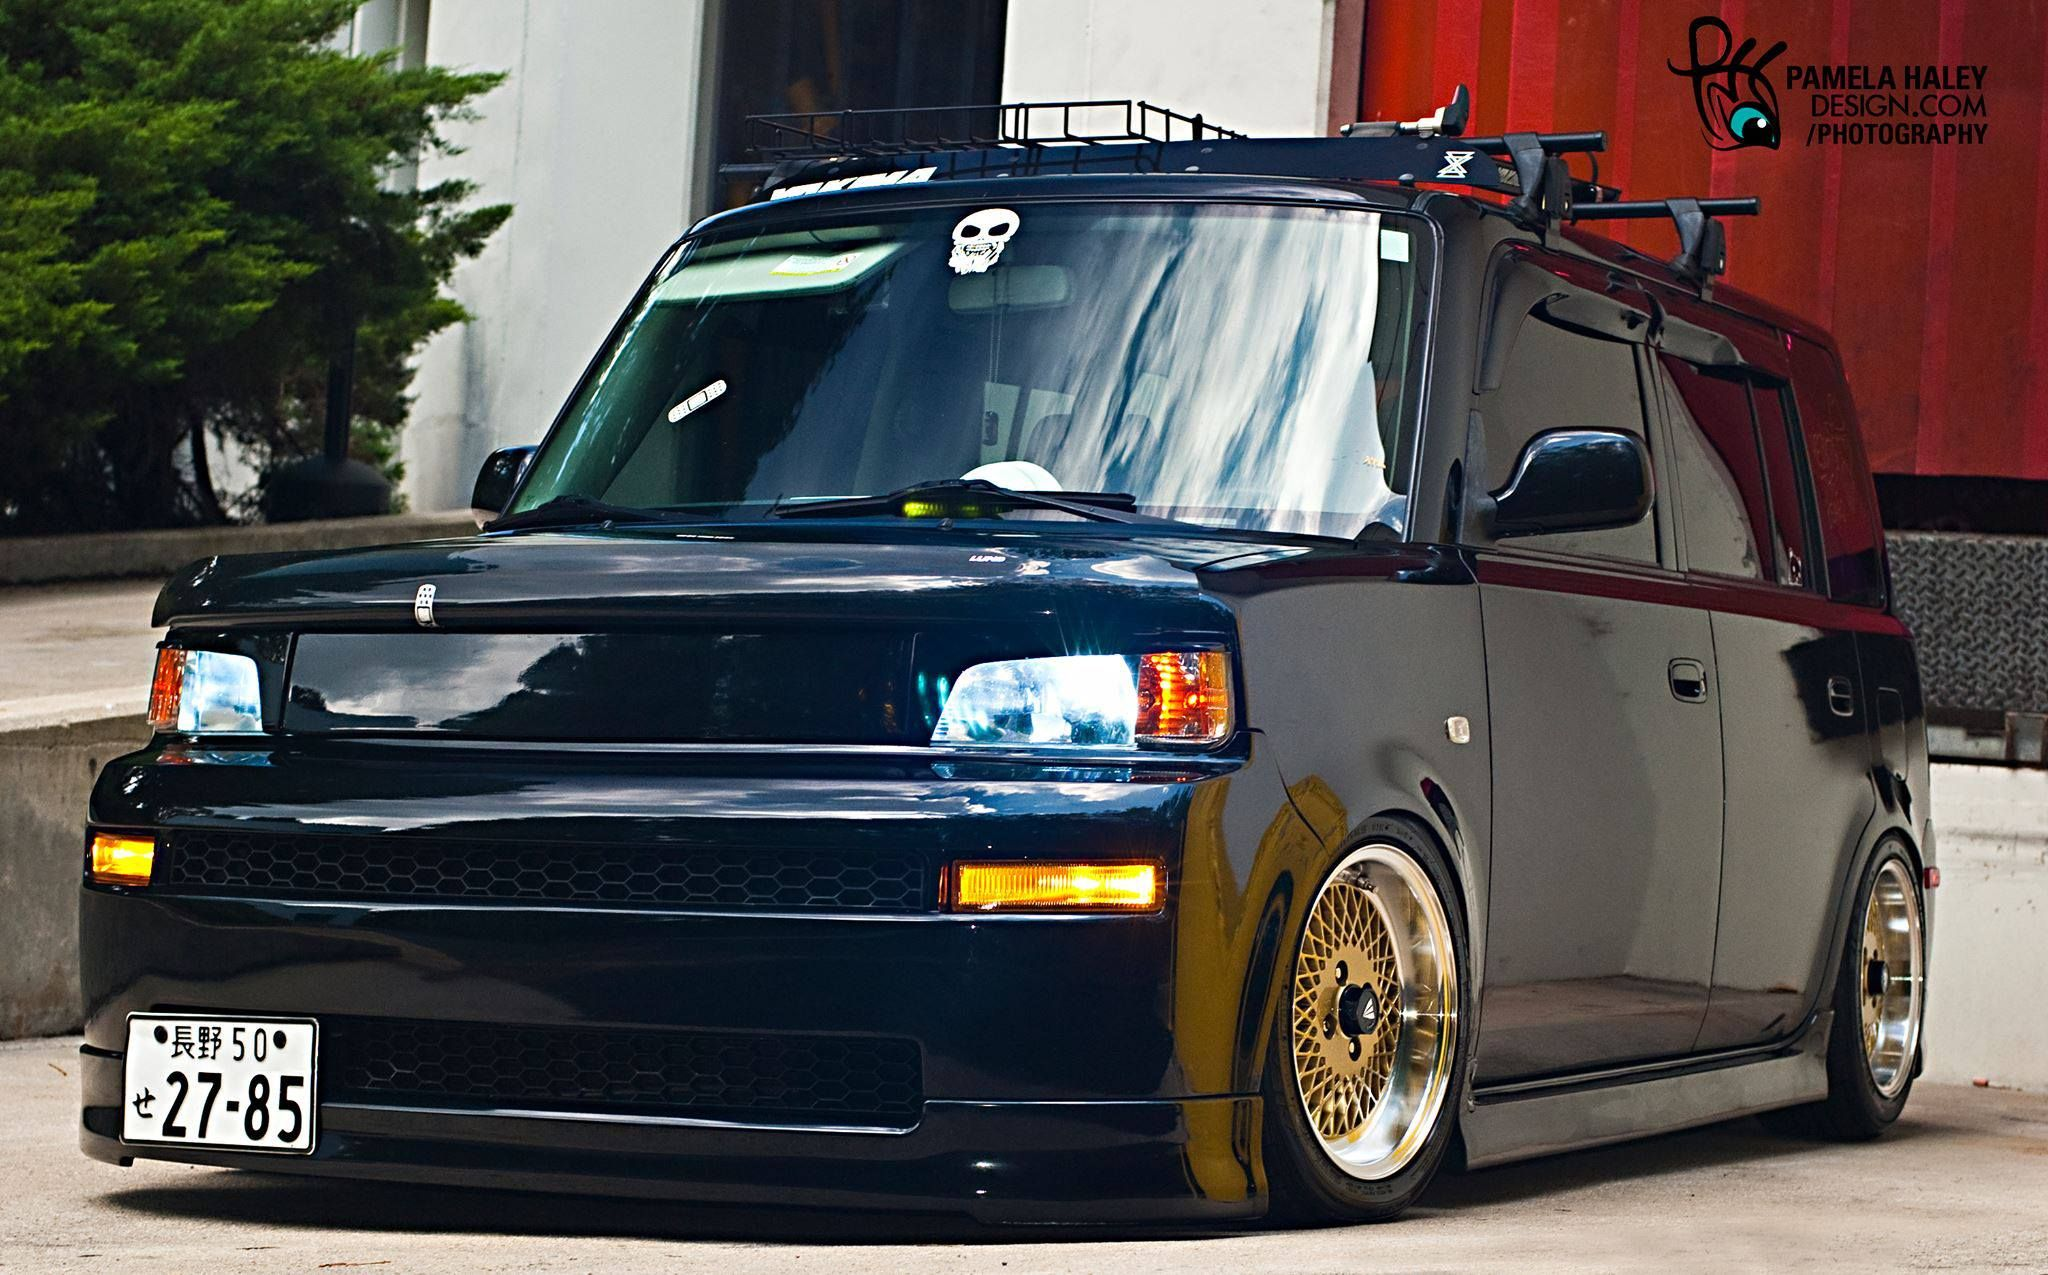 Pin By Veronica Sanchez On Car Ideas Toyota Scion Xb Scion Xb Scion